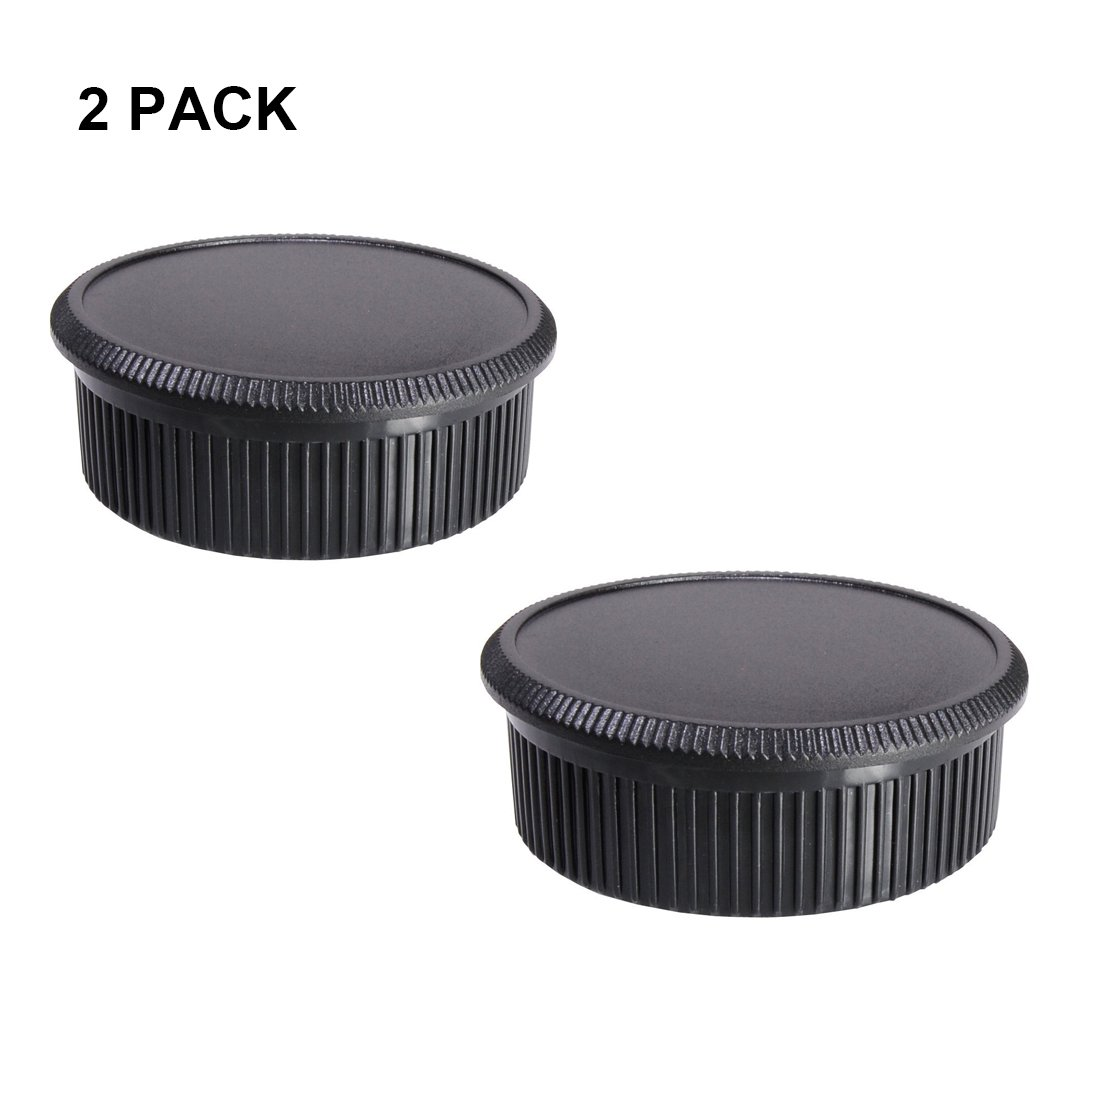 LXH 2 Pack Front Camera Body Cap and Rear Lens Cap Cover for Sony E-Mount NEX Mirrorless Sony Alpha A6500 A6300 a6000 a5100 a5000 a3000 A7R2 A7S2 A7S A7R A7 A7II NEX-7 NEX-6 / 5T / 5R / 5N / 5C / F3 4332256408